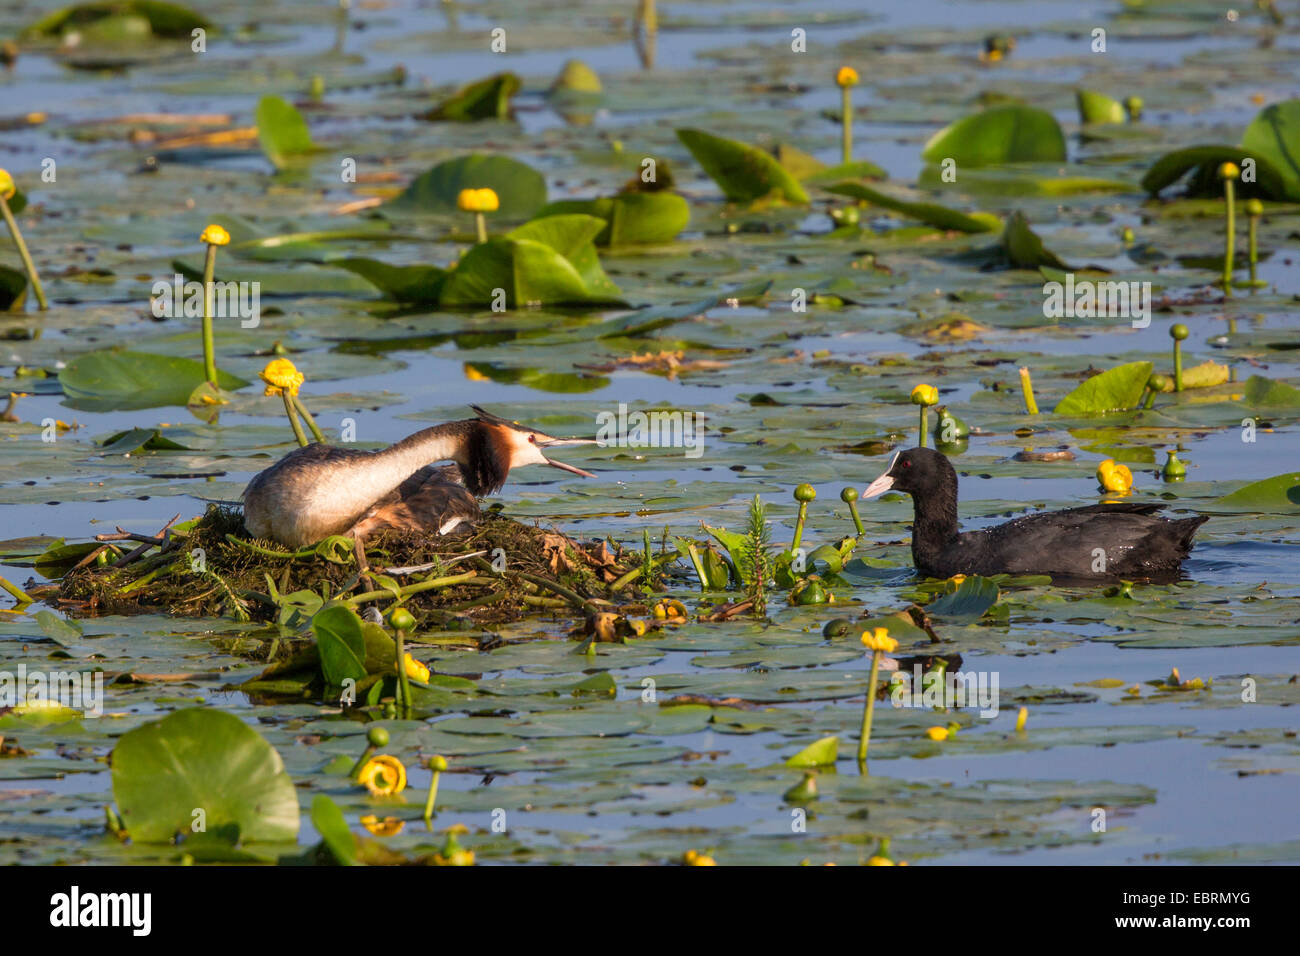 great crested grebe (Podiceps cristatus), in its nest,  threatens Eurasian coot, Germany, Bavaria, Lake Chiemsee - Stock Image